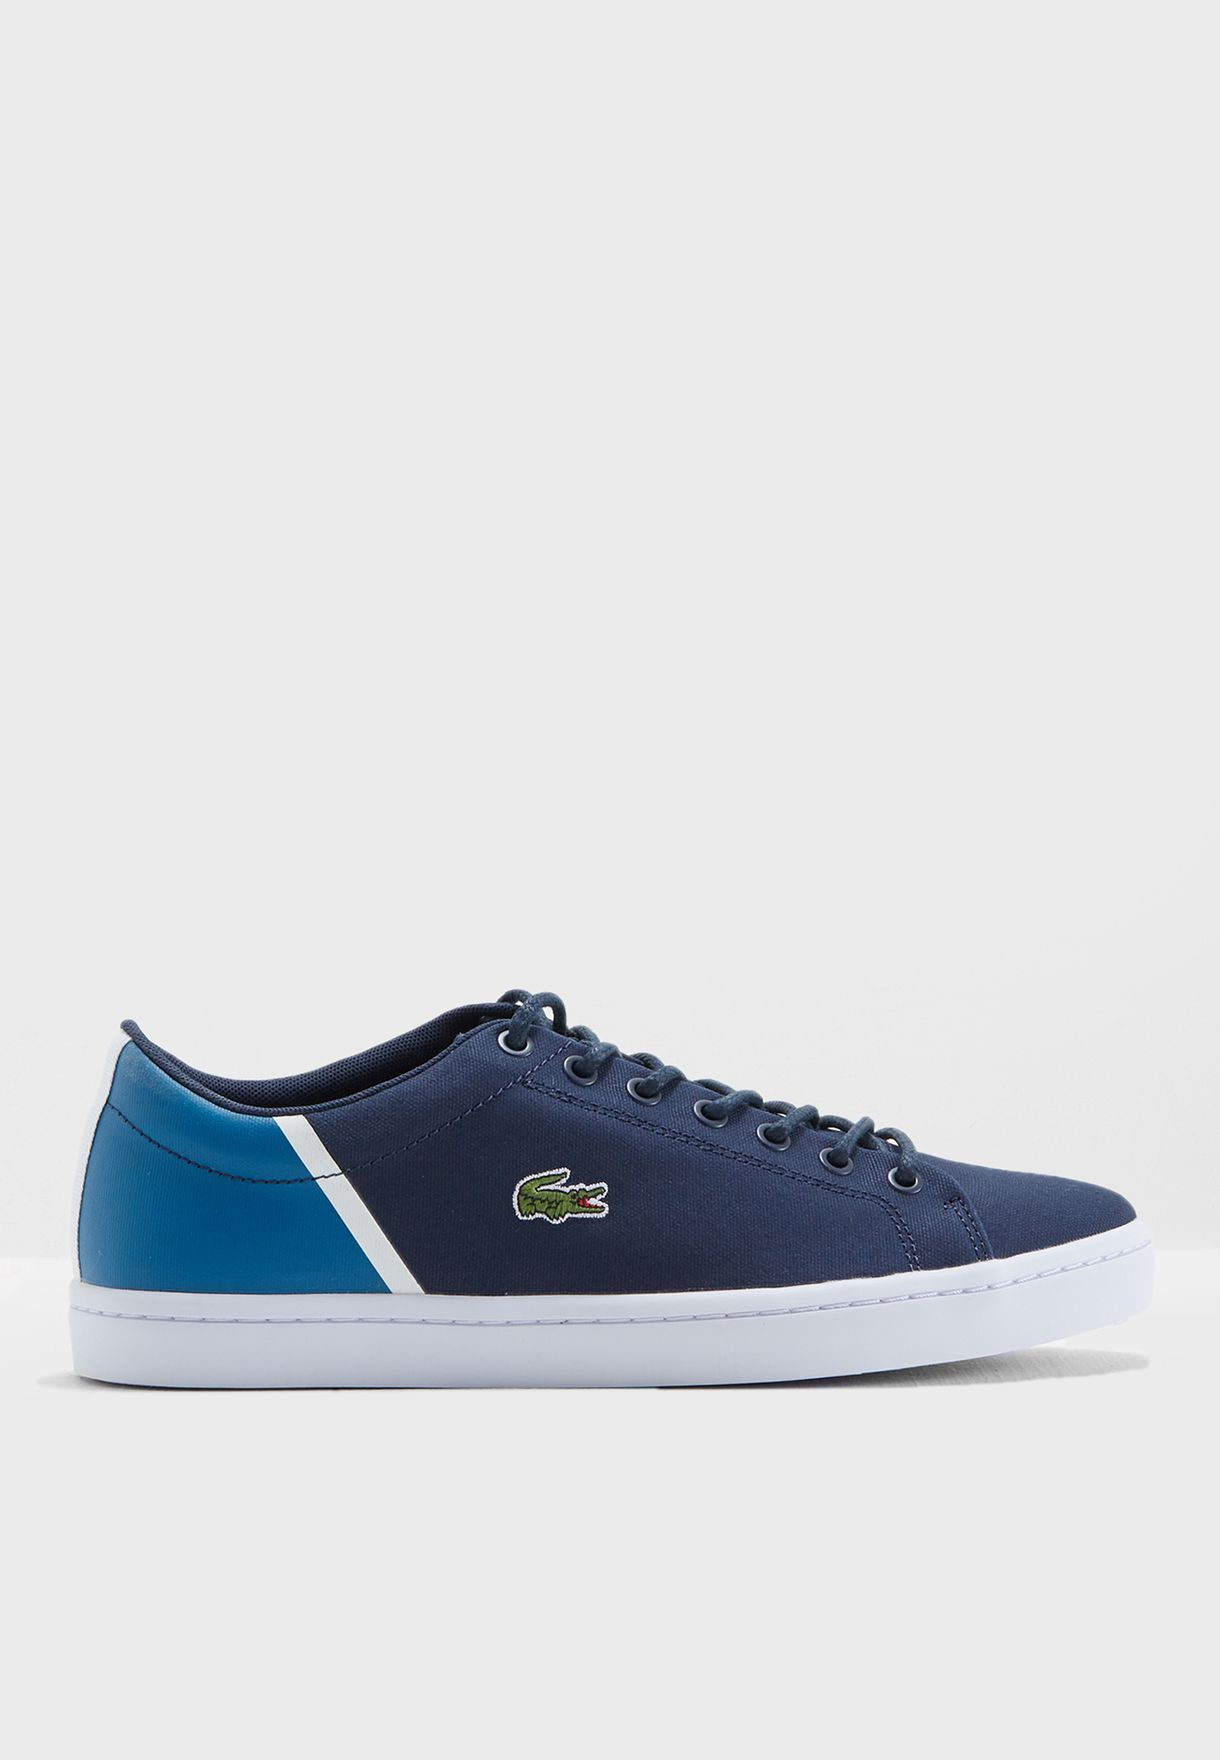 6304e244e Shop Lacoste navy Straightset Sneakers 735CAM0100-ND1 for Men in Qatar -  LA014SH42TBP